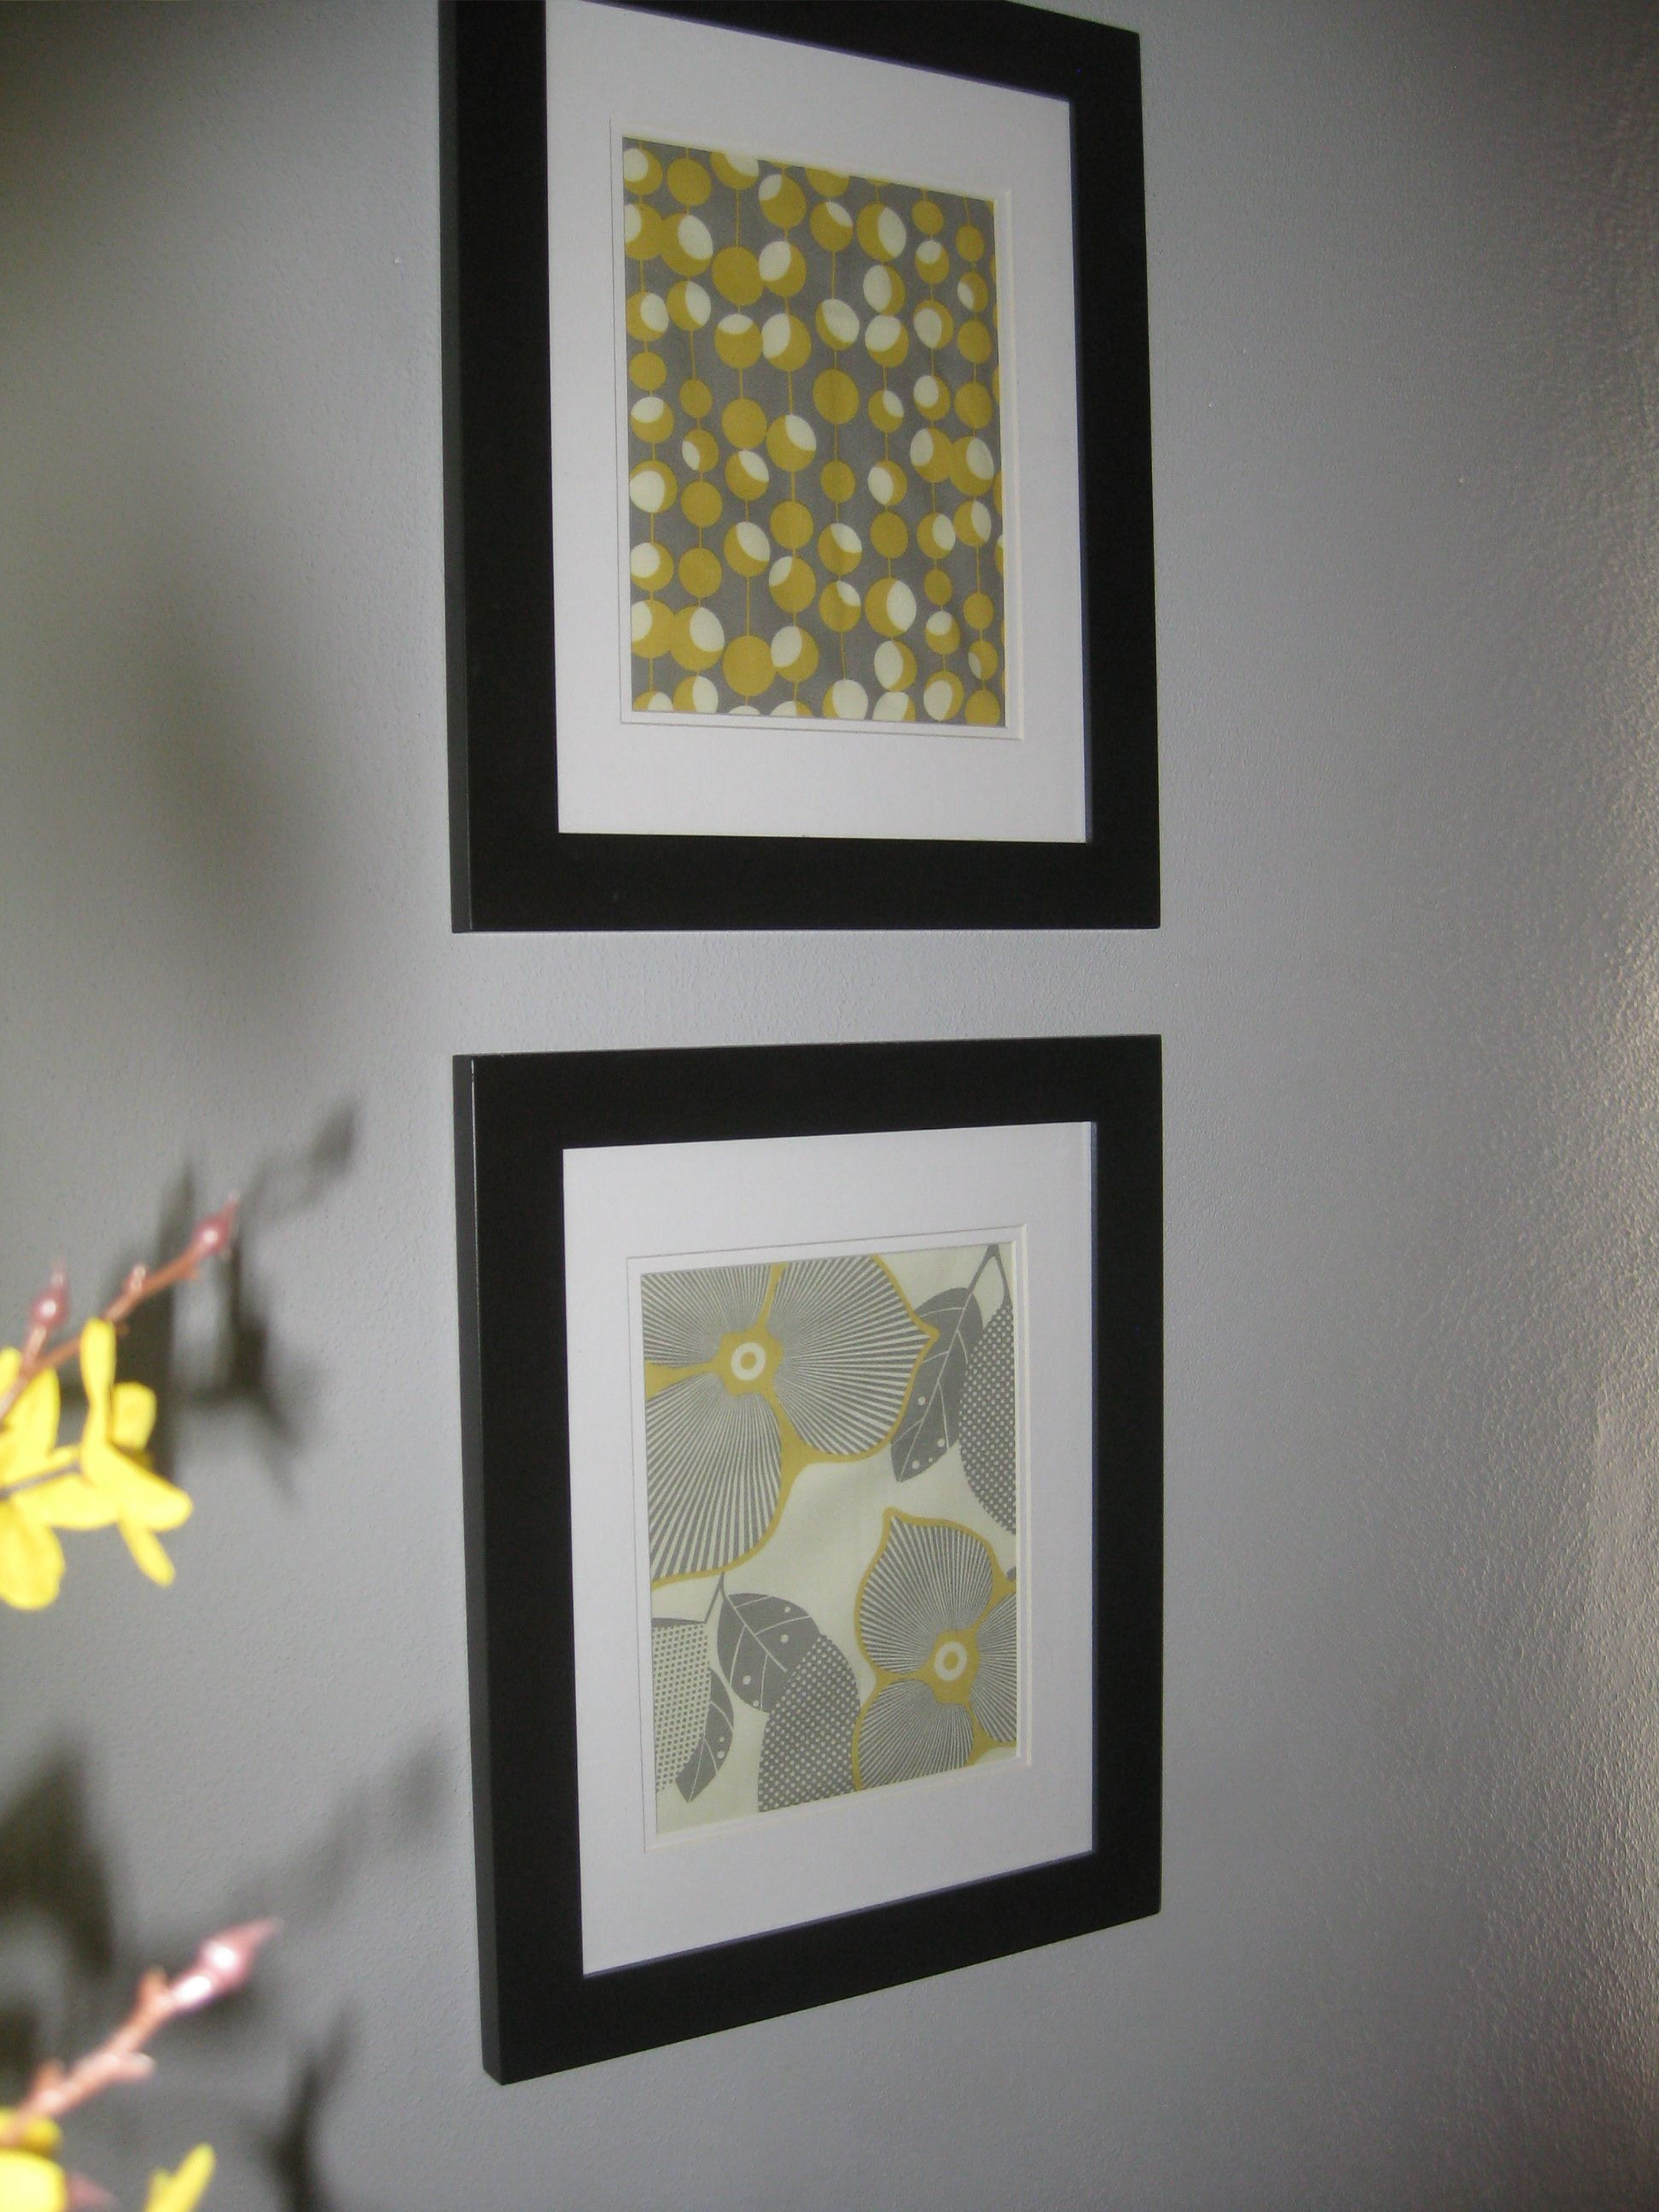 Framed Art Bathroom Yellow Grey Framed Fabric Art My Own Pinterest Grey Art And